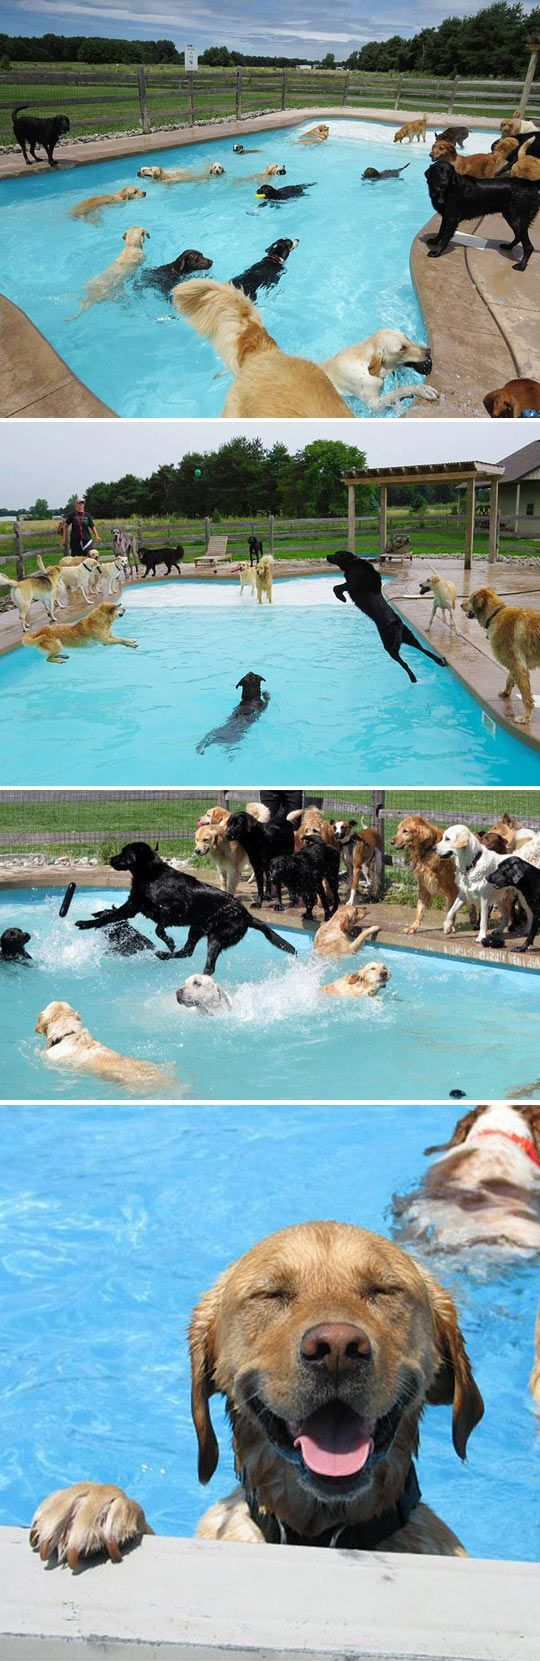 Doggy pool party just might be the happiest thing in the world.